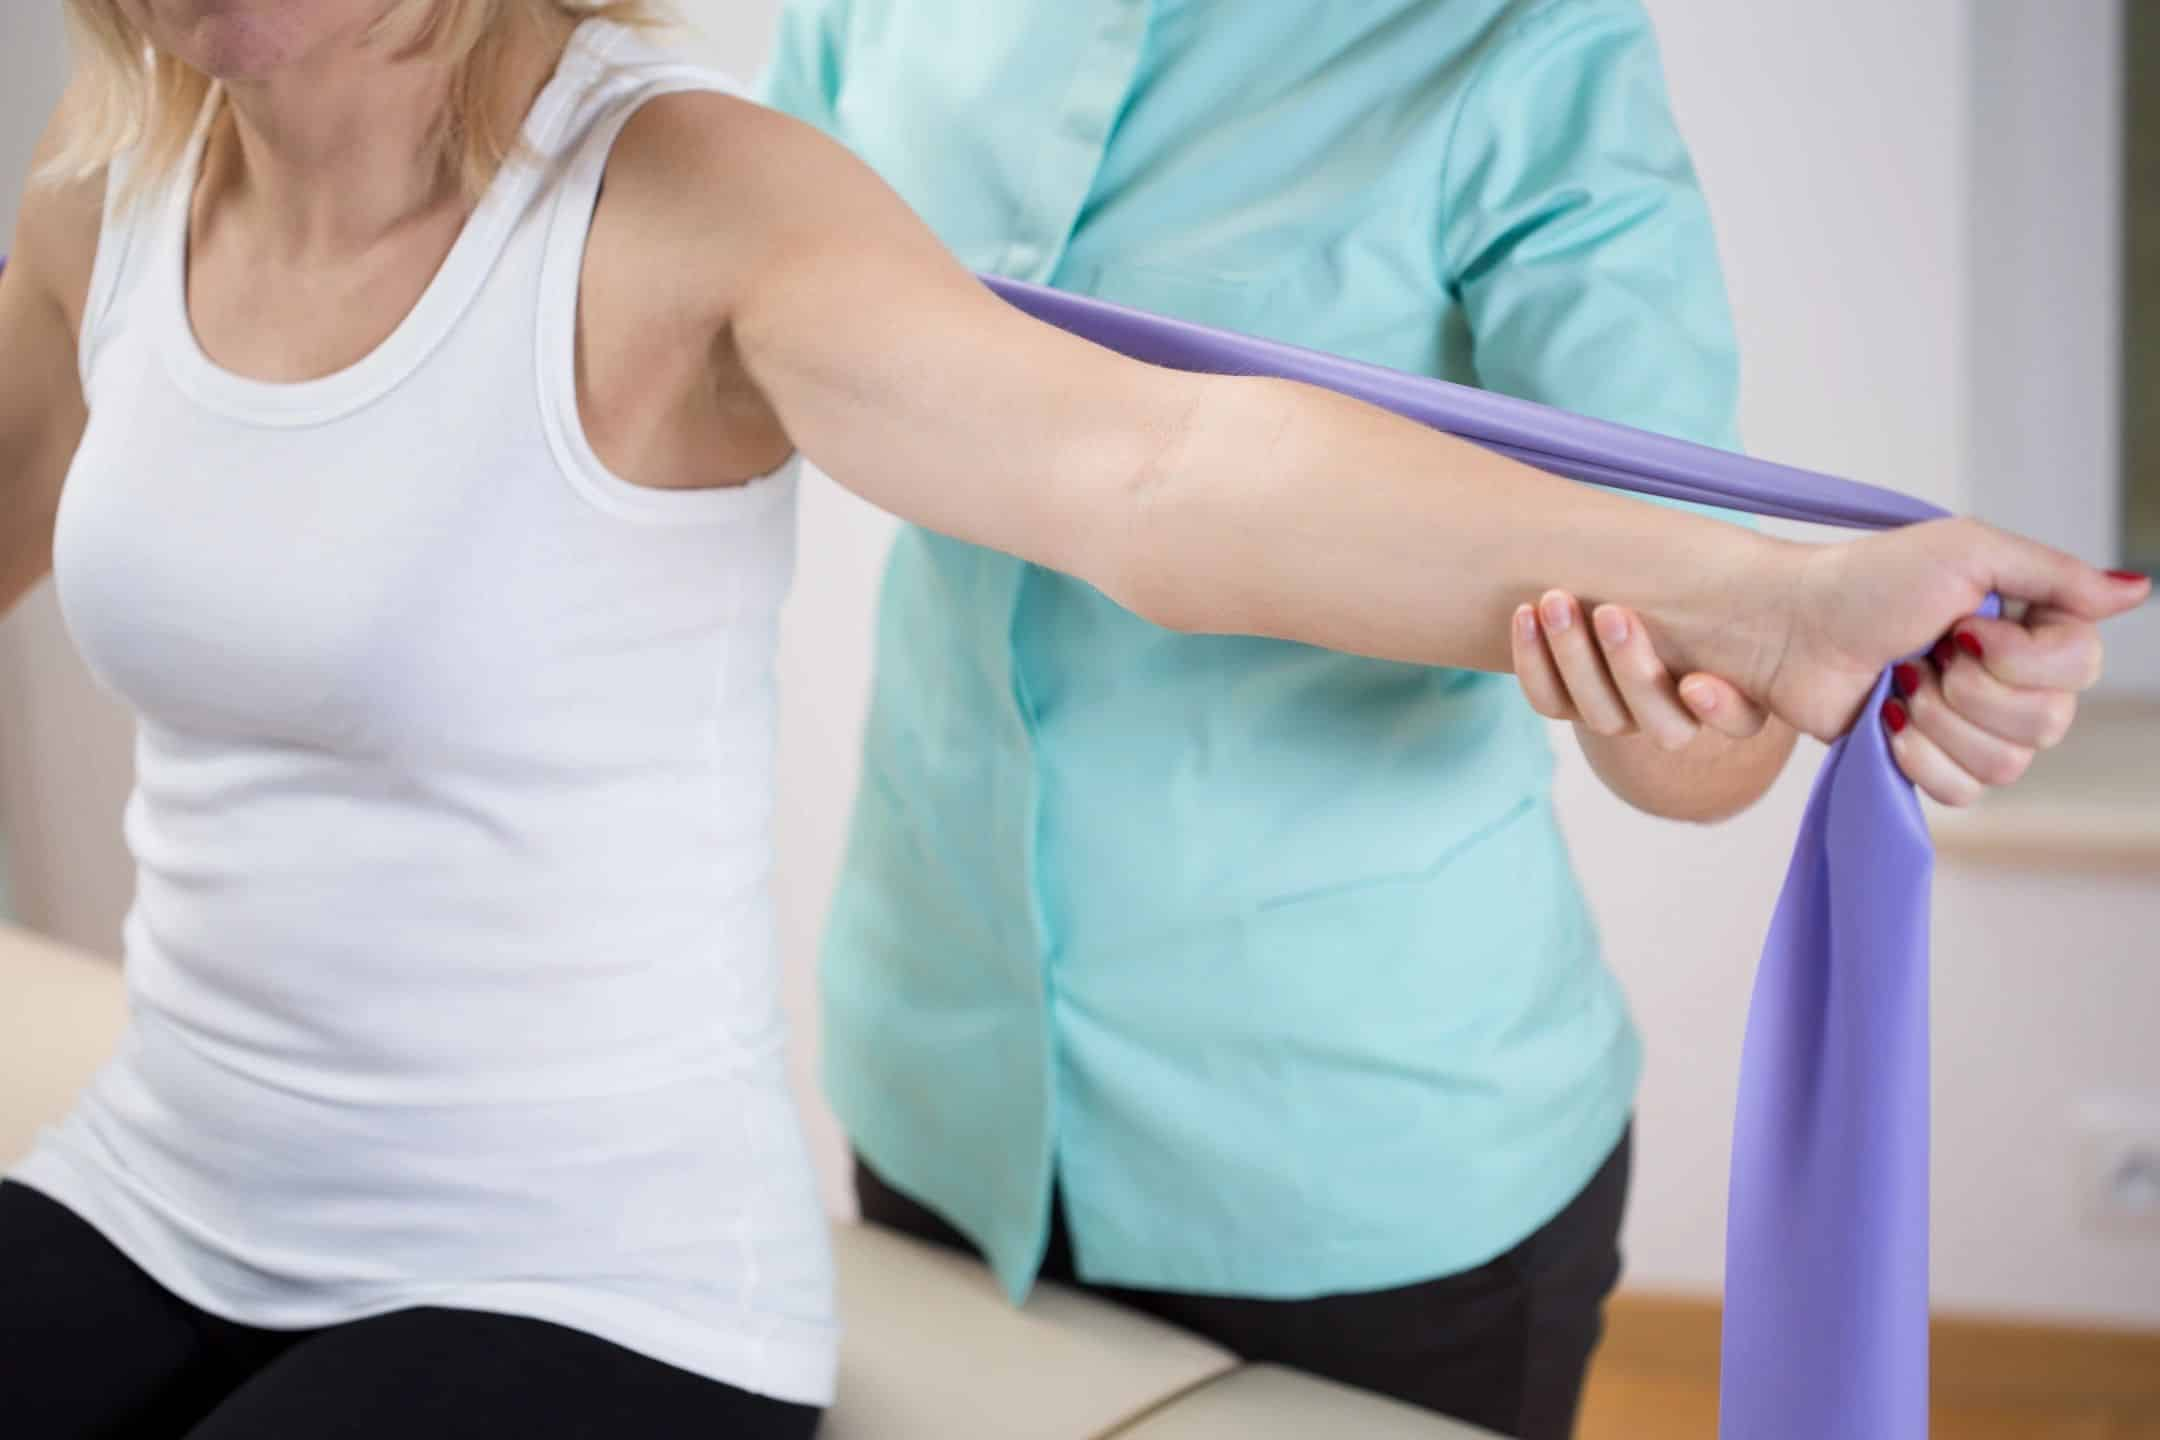 woman stretching using a large band with aid of therapist